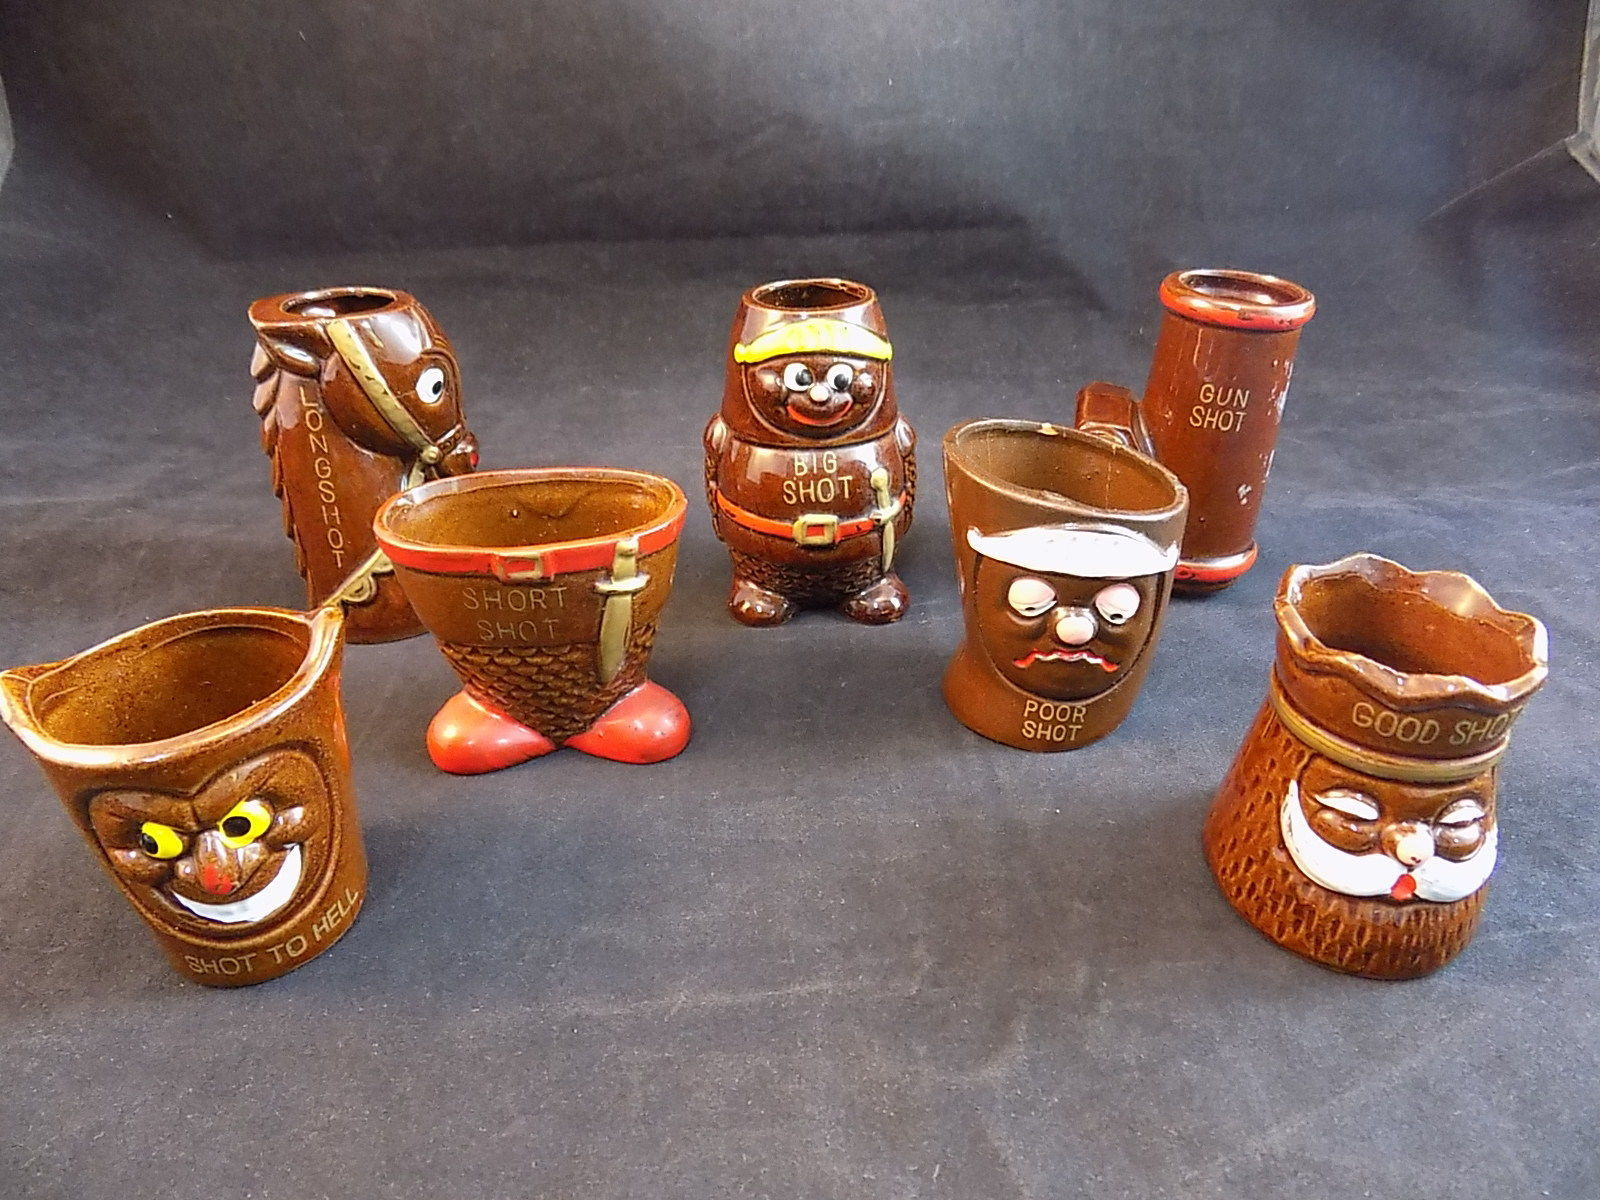 Vintage MID CENTURY SHOT GLASS SET JAPANESE POTTERY KITCH HUMOROUS Shot Glasses